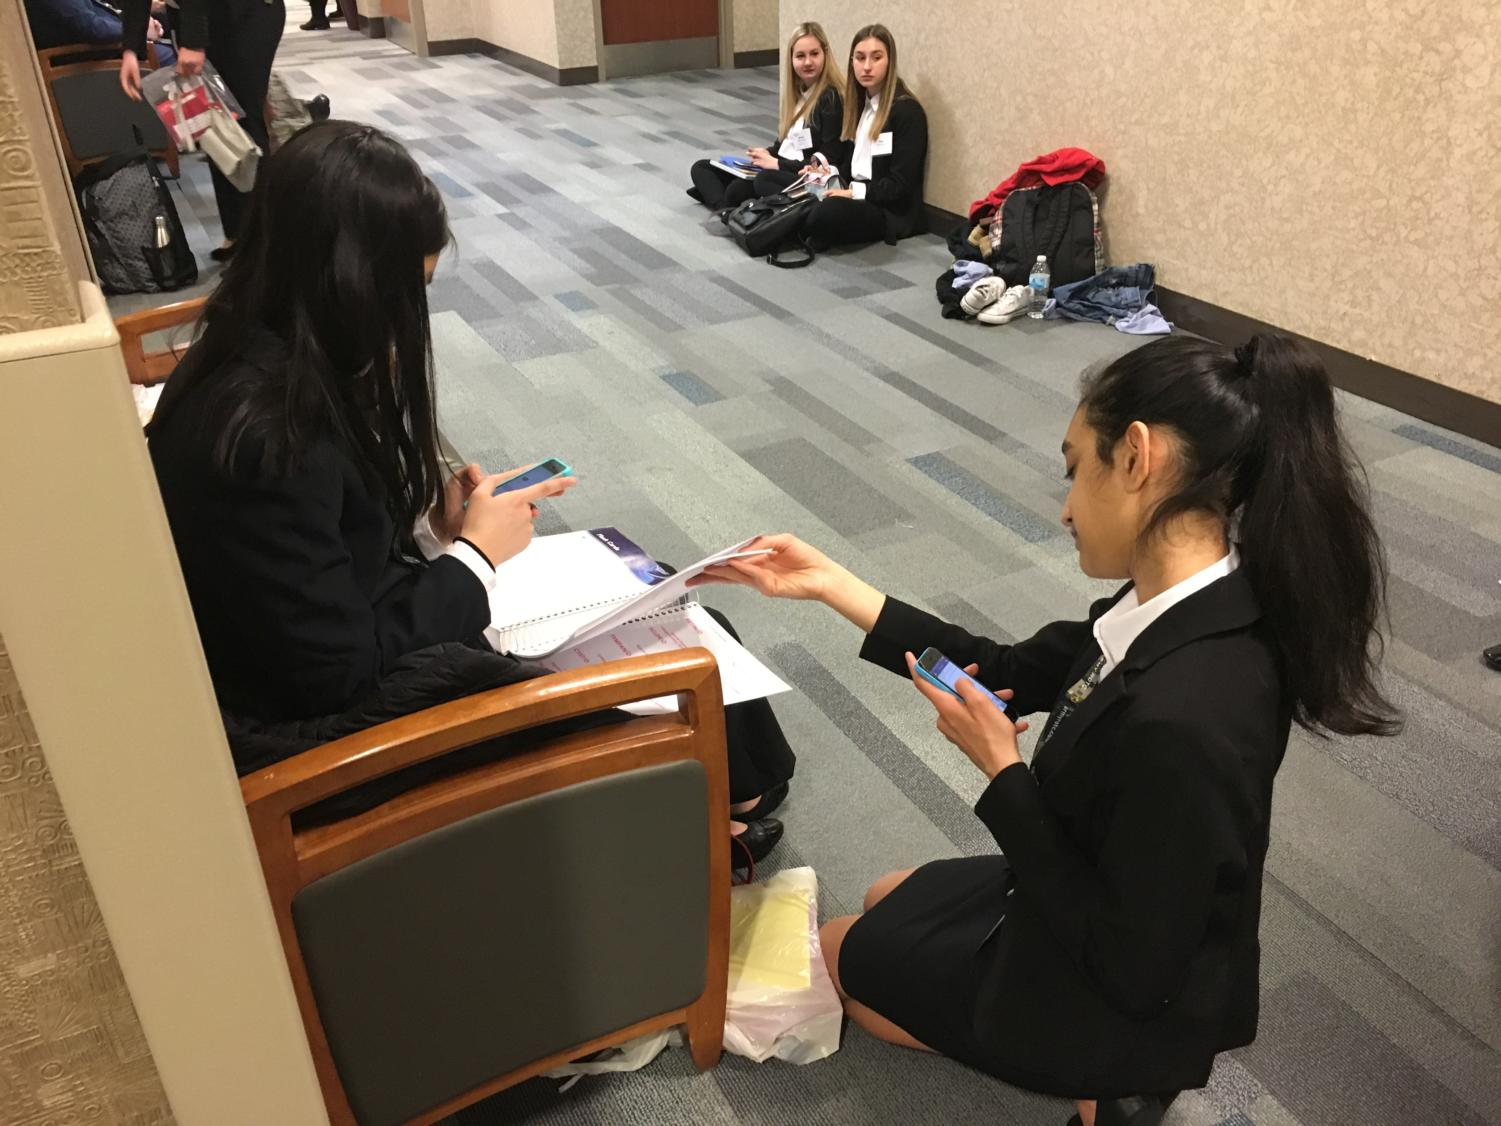 Many+students+who+were+competing+in+the+same+event+studied+together.+Shaily+Laad%2C+freshman%2C+competed+in+Medical+Terminology.+She+joined+HOSA+because+she+thought+it+would+be+a+good+opportunity+for+a+student+interested+in+medicine.+Since+this+was+her+first+year%2C+she+struggled+with+finding+the+right+studying+materials.+%22I+didn%27t+really+know+how+to+prepare+for+my+event%2C%22+Laad+said.+%22My+studying+consisted+mostly+of+quizlets.%22+